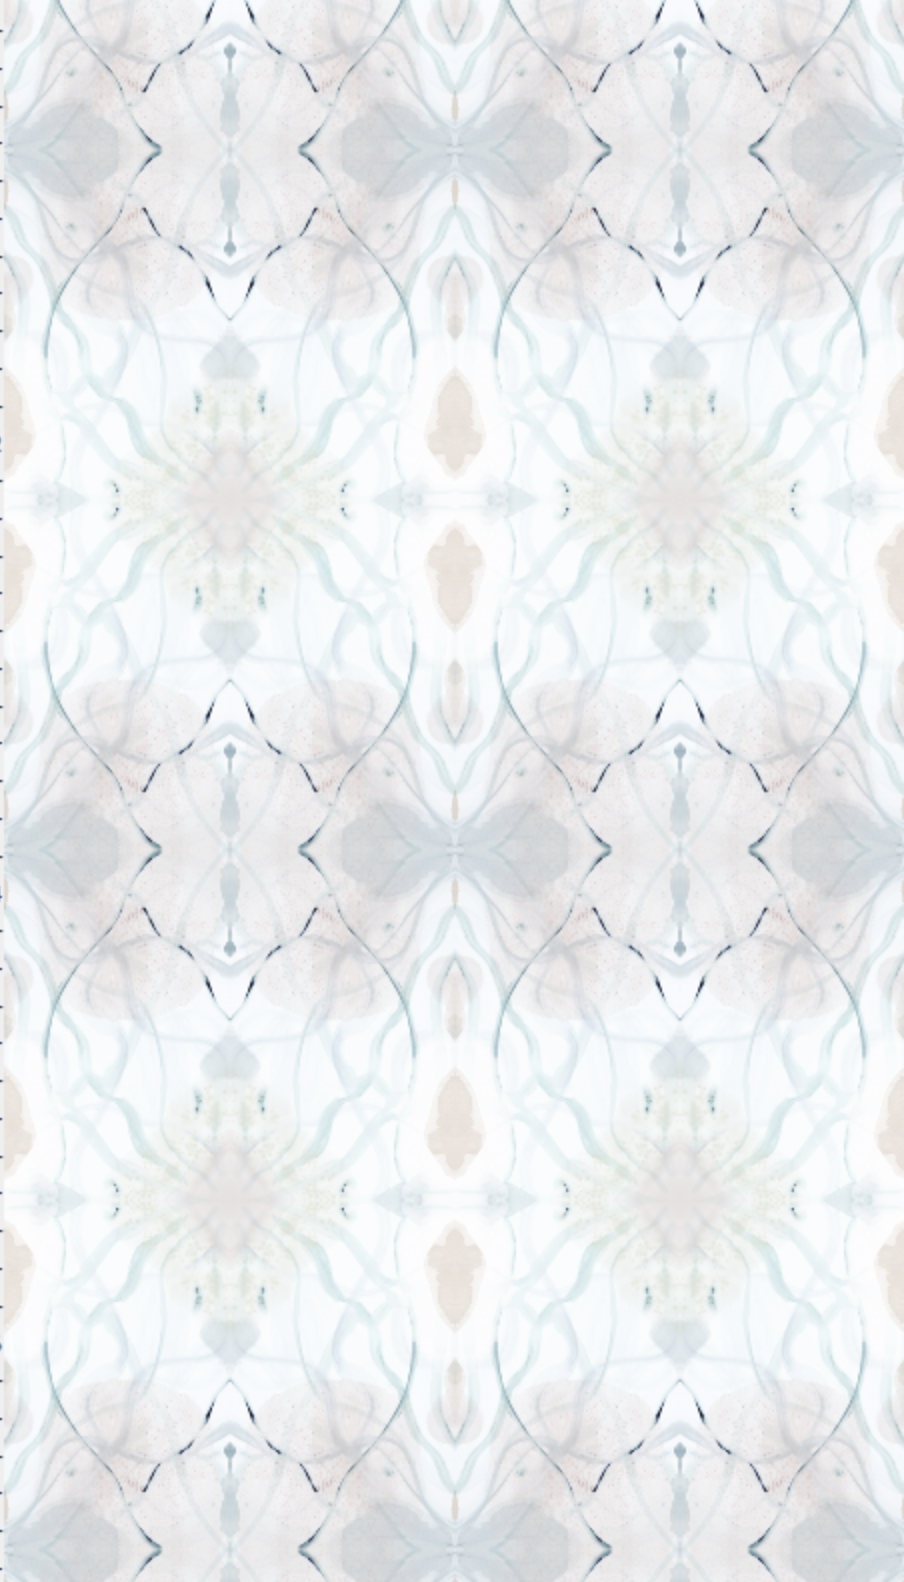 jennifer latimer wallpaper, jennifer latimer, charleston artist, charleston abstract art, bedroom accent wall girls room, girls room wallpaper, best wallpaper bedroom, soft feminine wallpaper